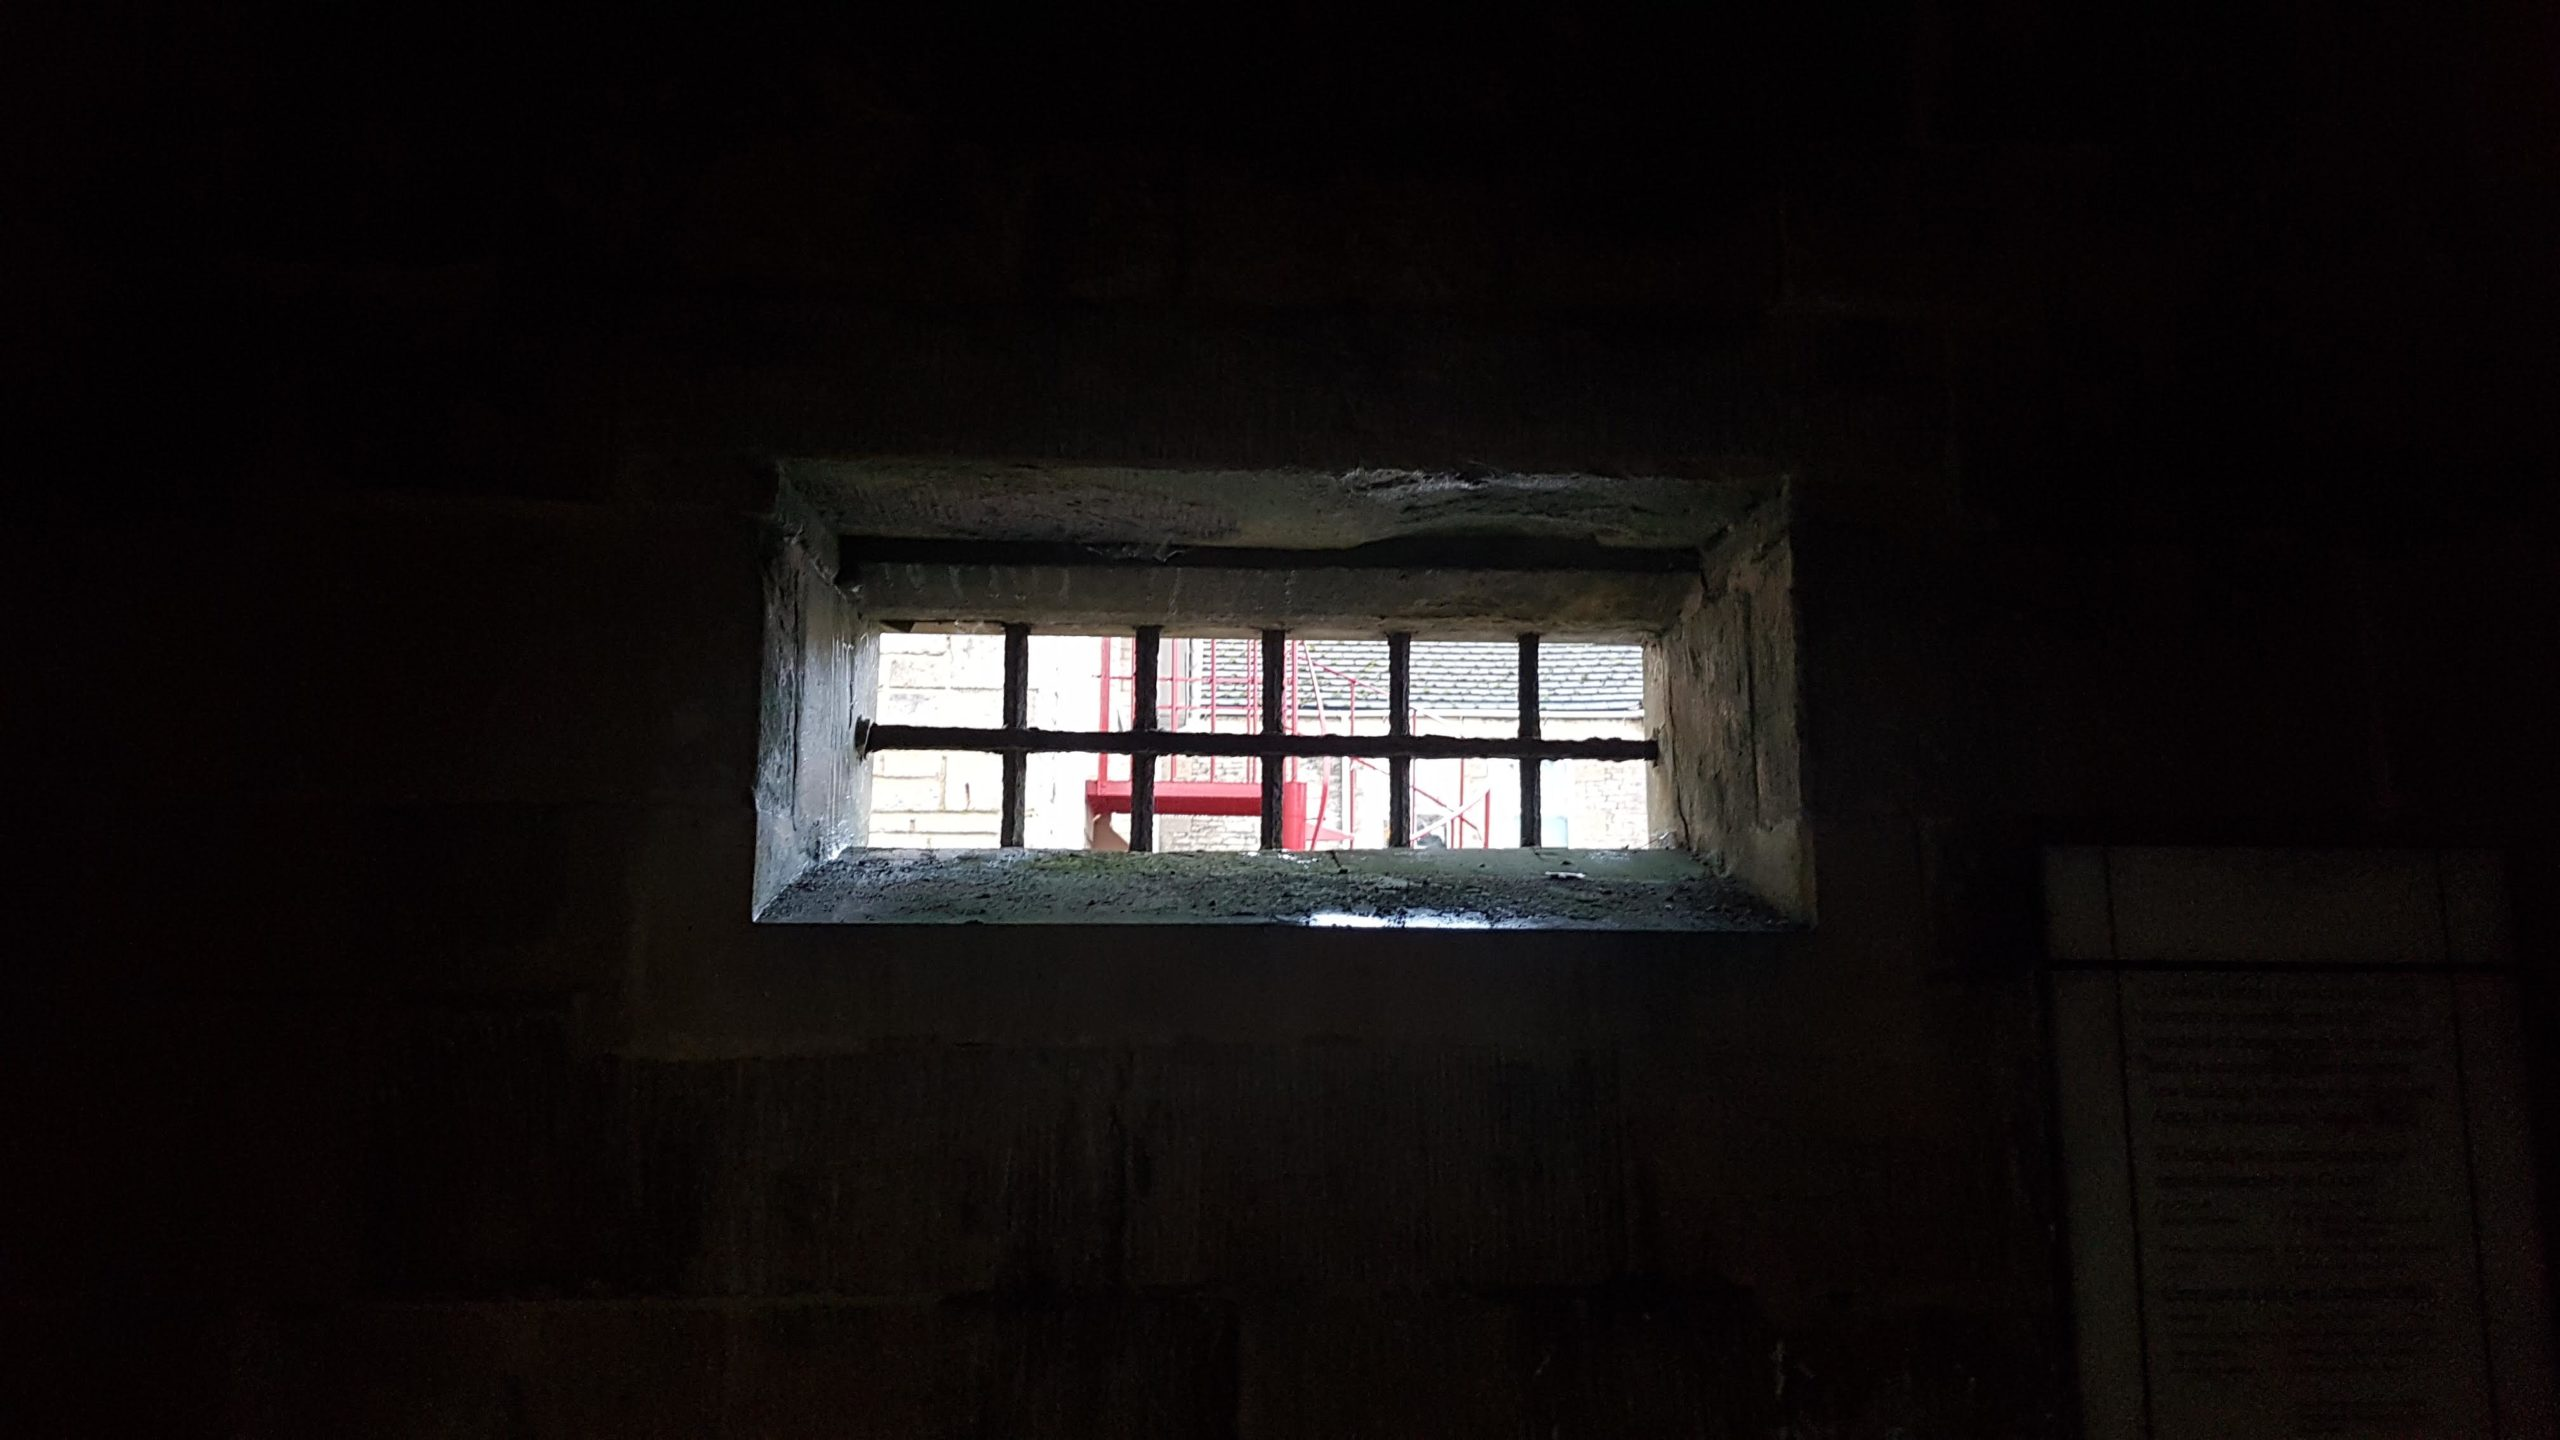 Cell window, or aperture, seen from the inside of one of the cells.